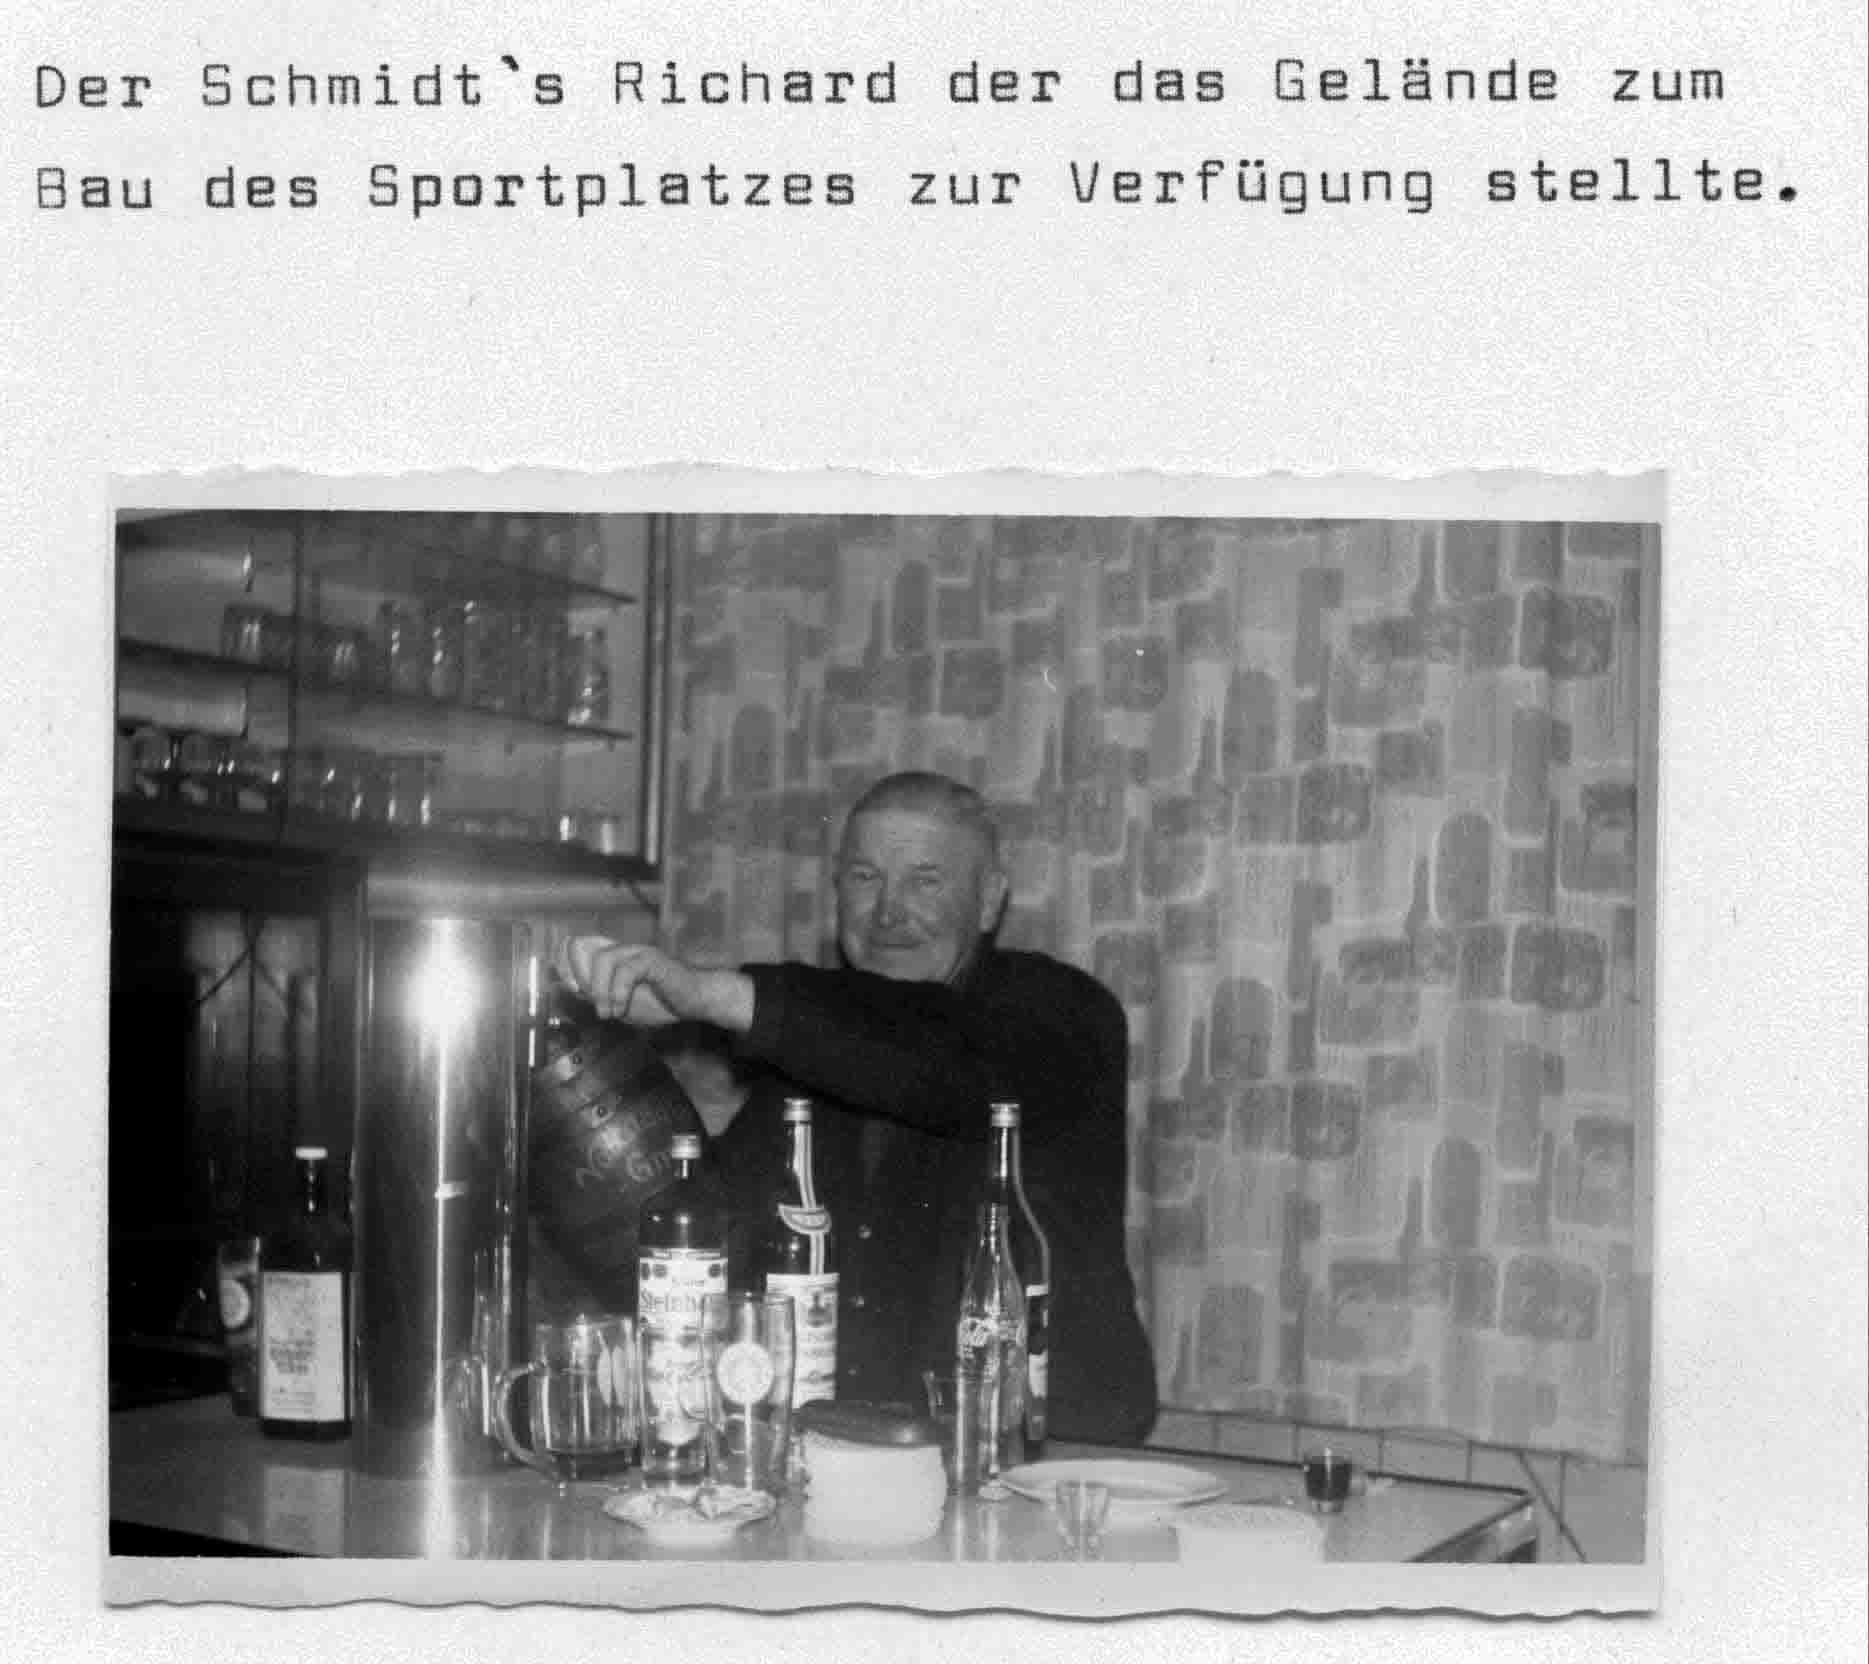 schmidts richard 1938